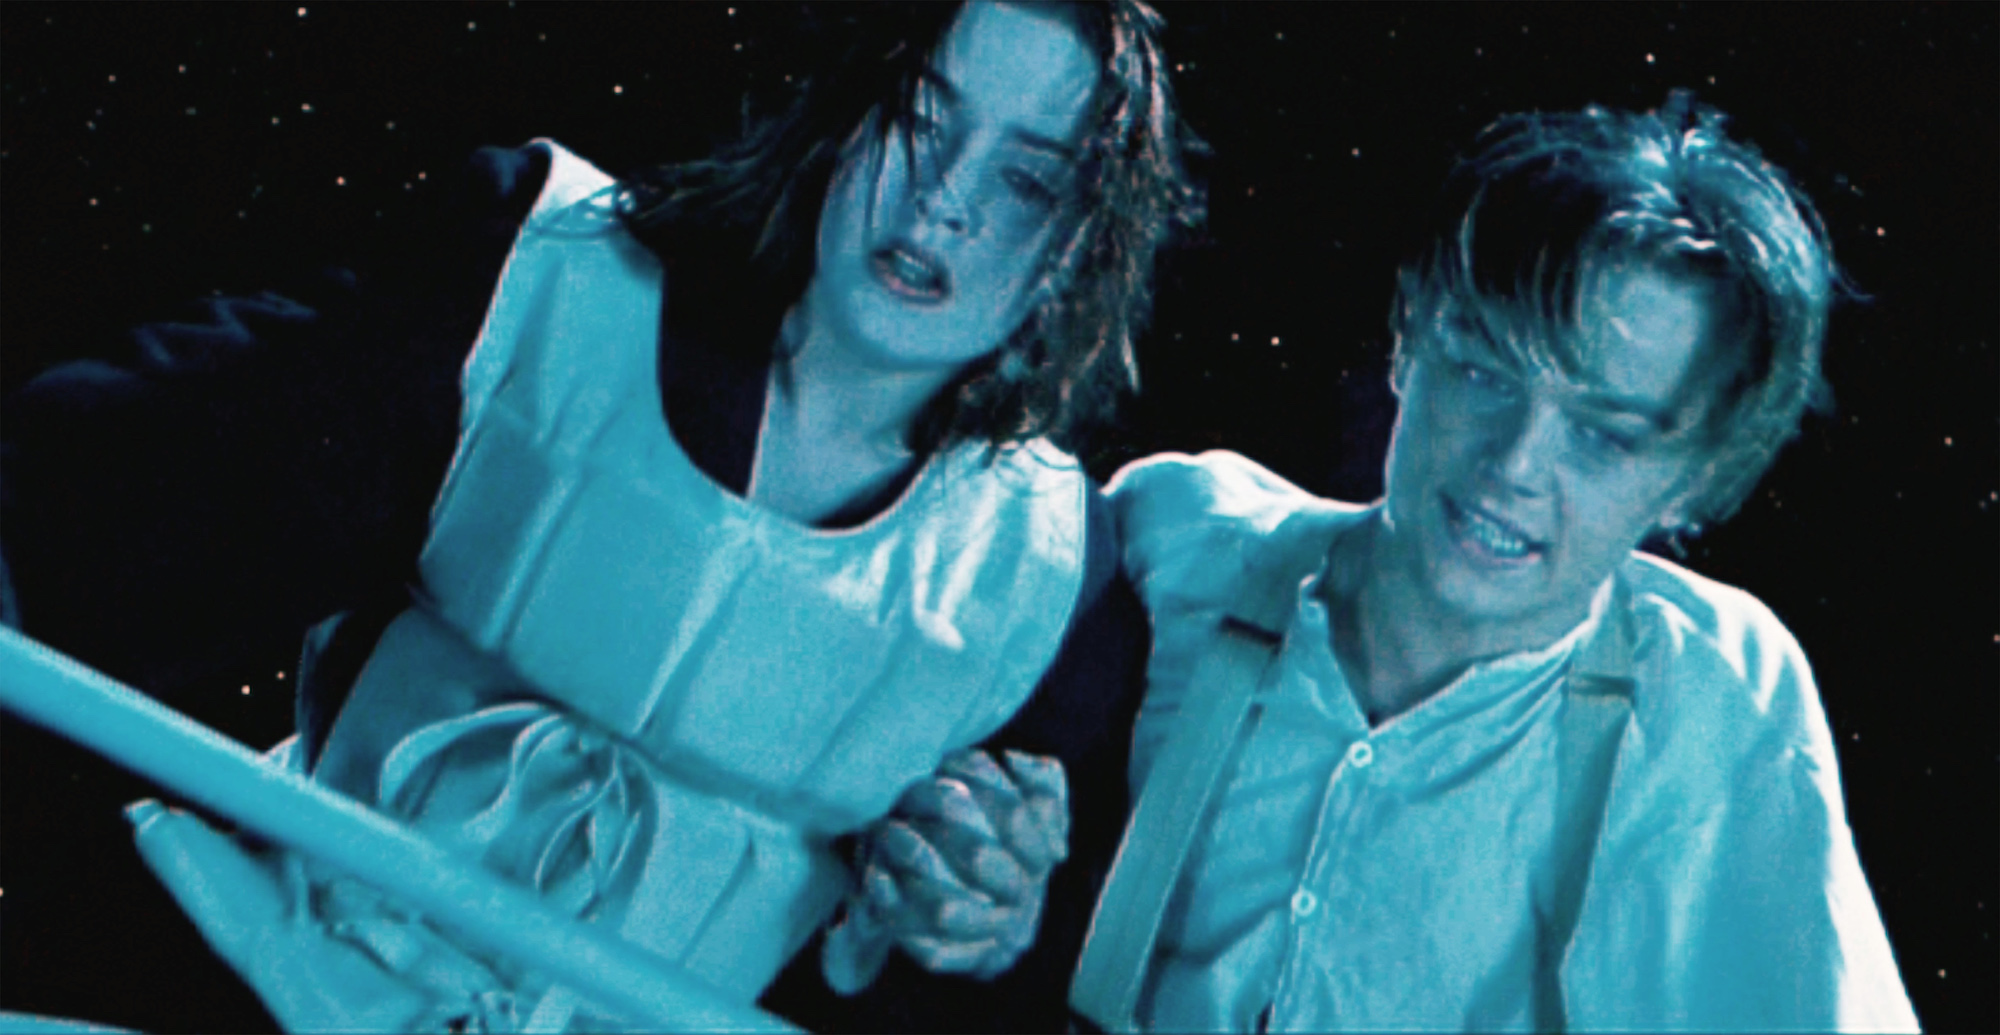 Rose (Kate Winslet) and Jack (Leonardo DiCaprio) on the Titanic, as the ship plunges into the water below.